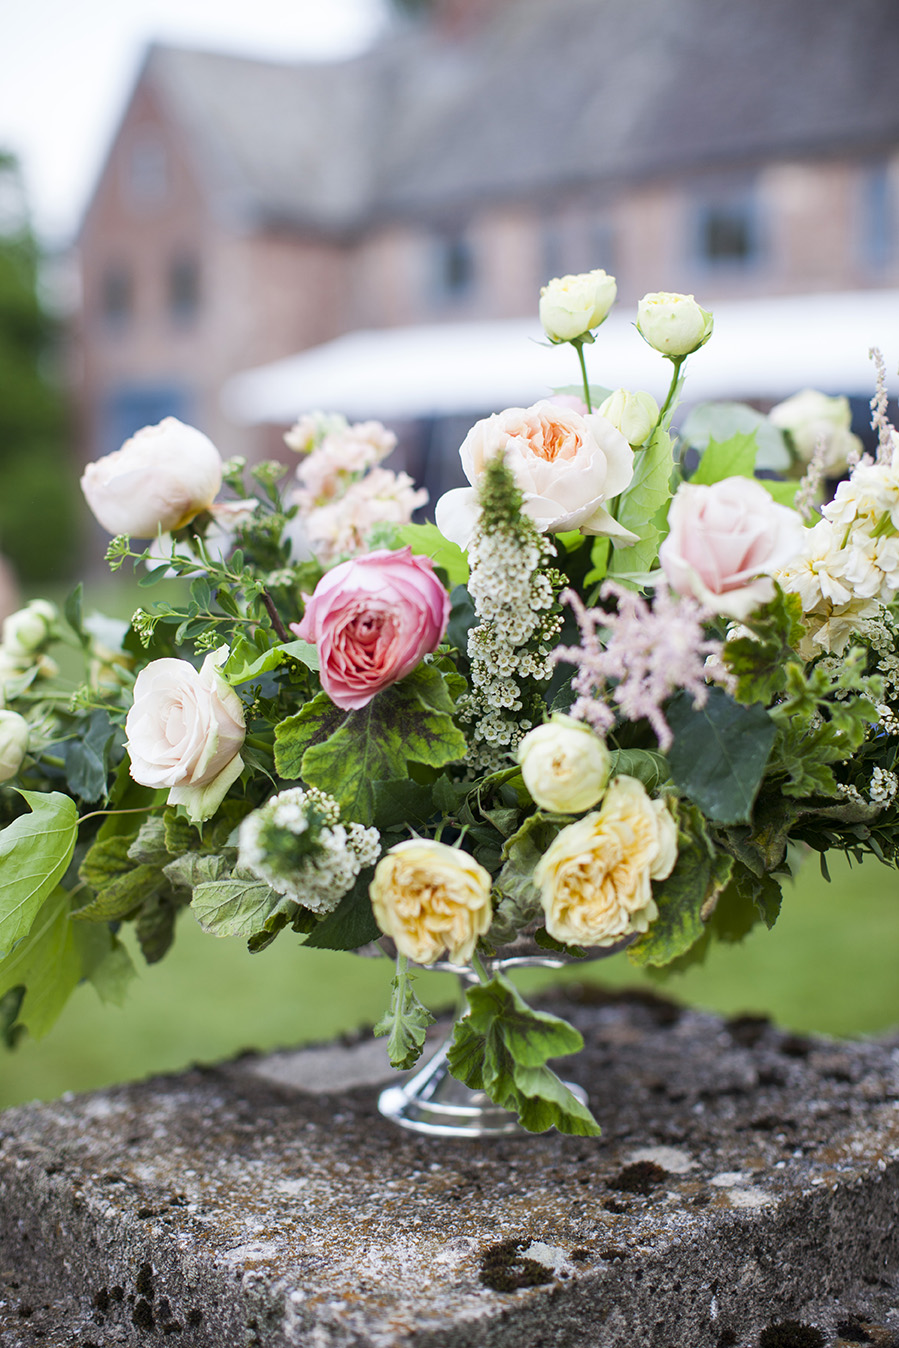 SYBIL - Reminiscent of an English garden, our Sybil arrangements are filled with European elegance and a touch of whimsy.  Your package includes florals designed in a compote (choose gold or silver), votives (choose gold, silver, or clear), and seasonal blooms.